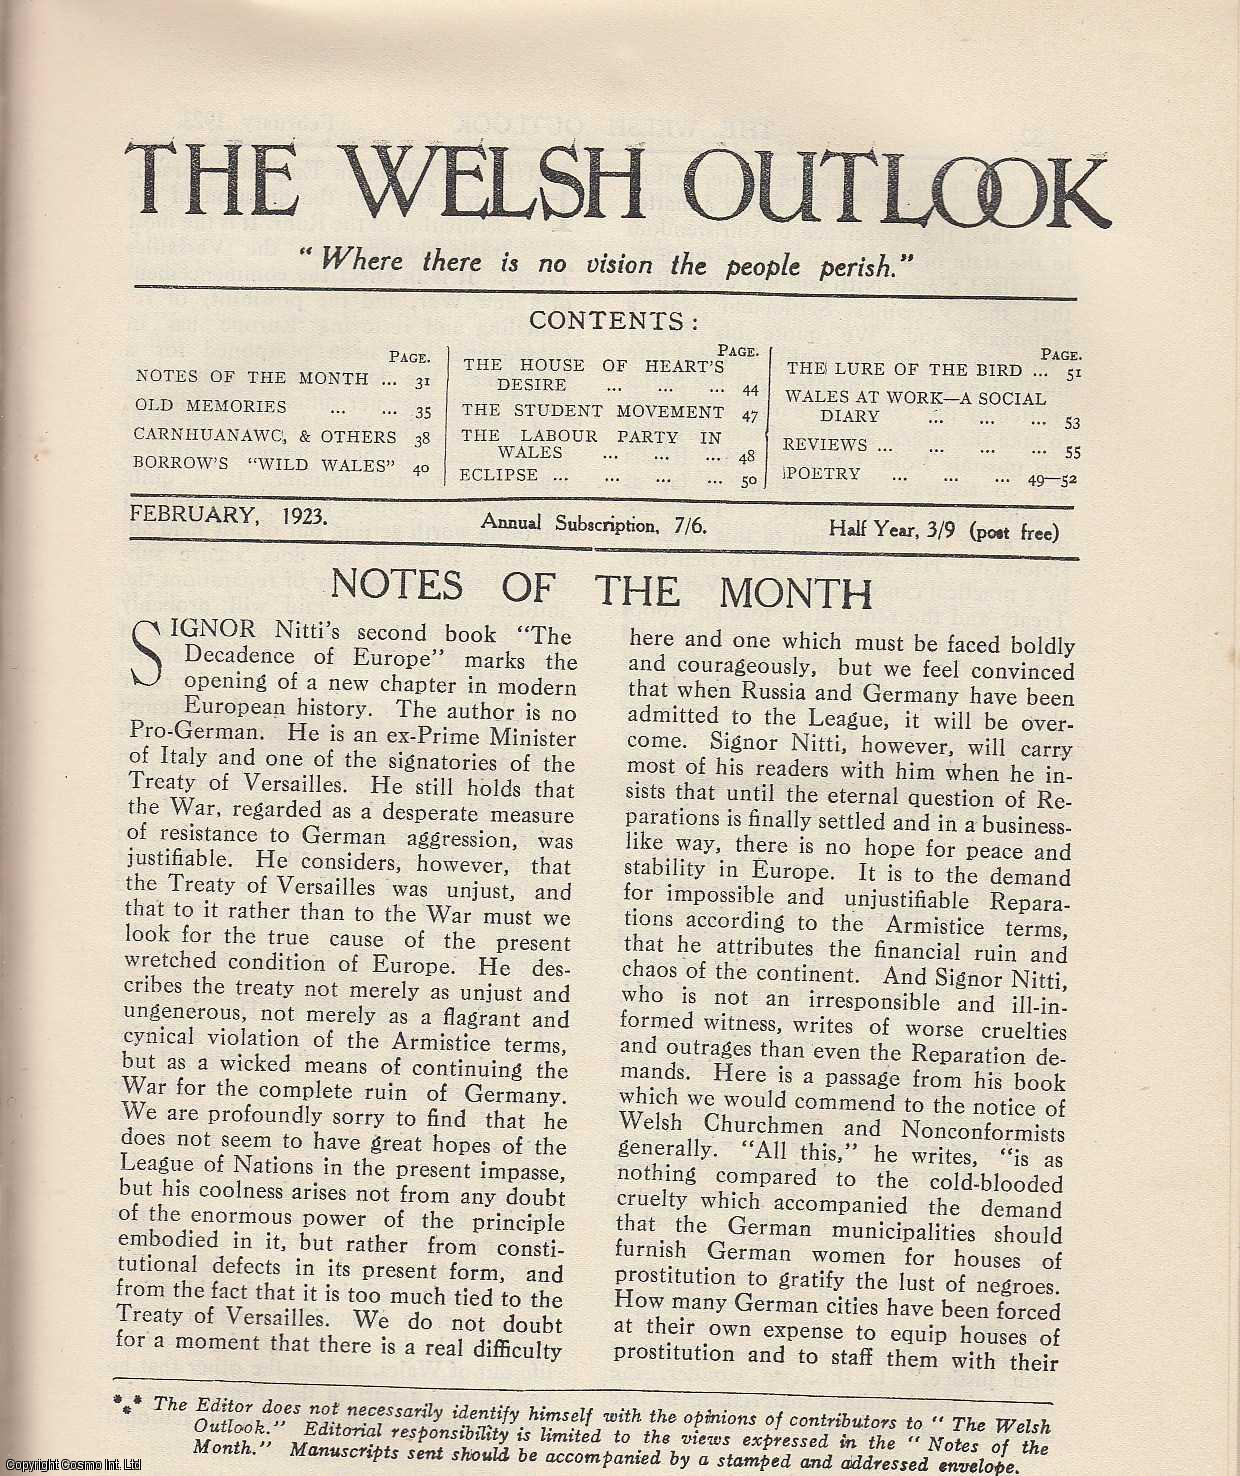 The Welsh Outlook. A Monthly Journal of National Social Progress. February, 1923. Contains; Carnhuanawc, and Others by Professor T. Gwynn Jones; Borrow's Wild Wales by Professor H. Wright; The House of Heart's Desire by Hon. R. Erkskine; The Student Christian Movement by Rev. Dr. Owen Prys; The Labour Party in Wales by Emrys Hughes; Eclipse by Trefor Llwyd; The Lure of The Bird by Rev. J.T. Lewis; Wales at Work - A Social Diary., Thomas Jones (Editor)